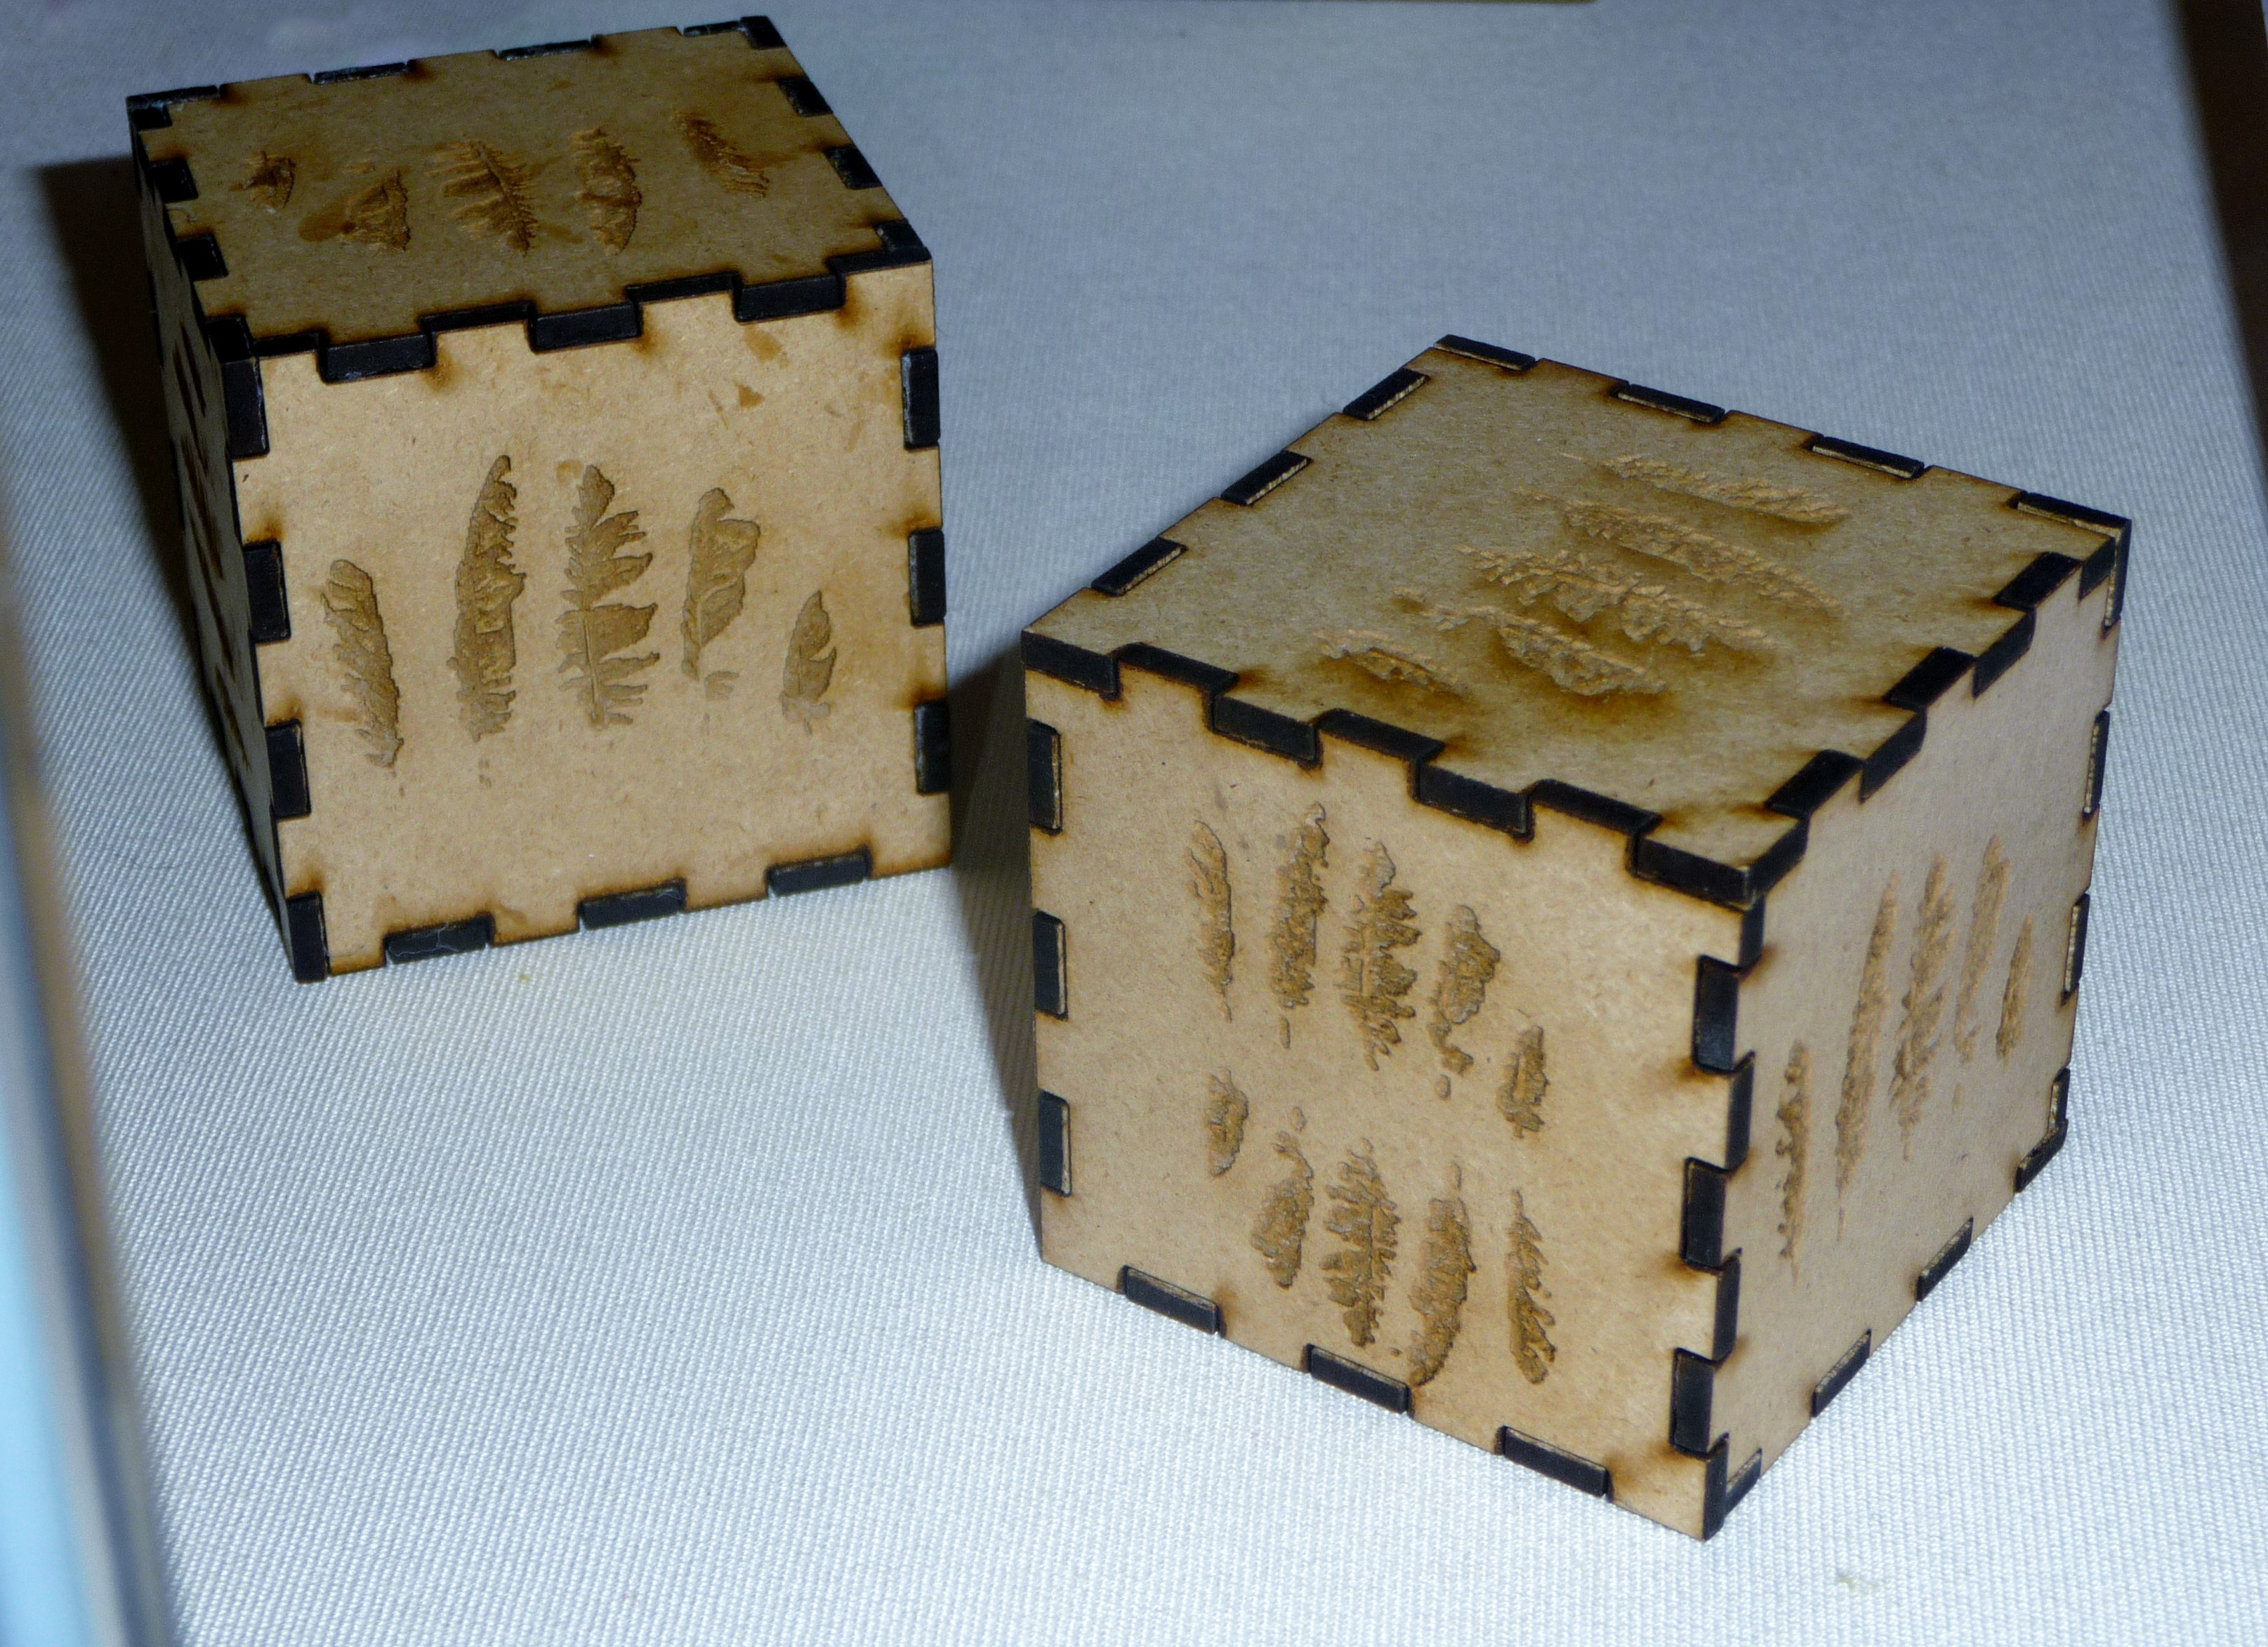 BOXES by Siwan Mair Newcombe, 2014, wood